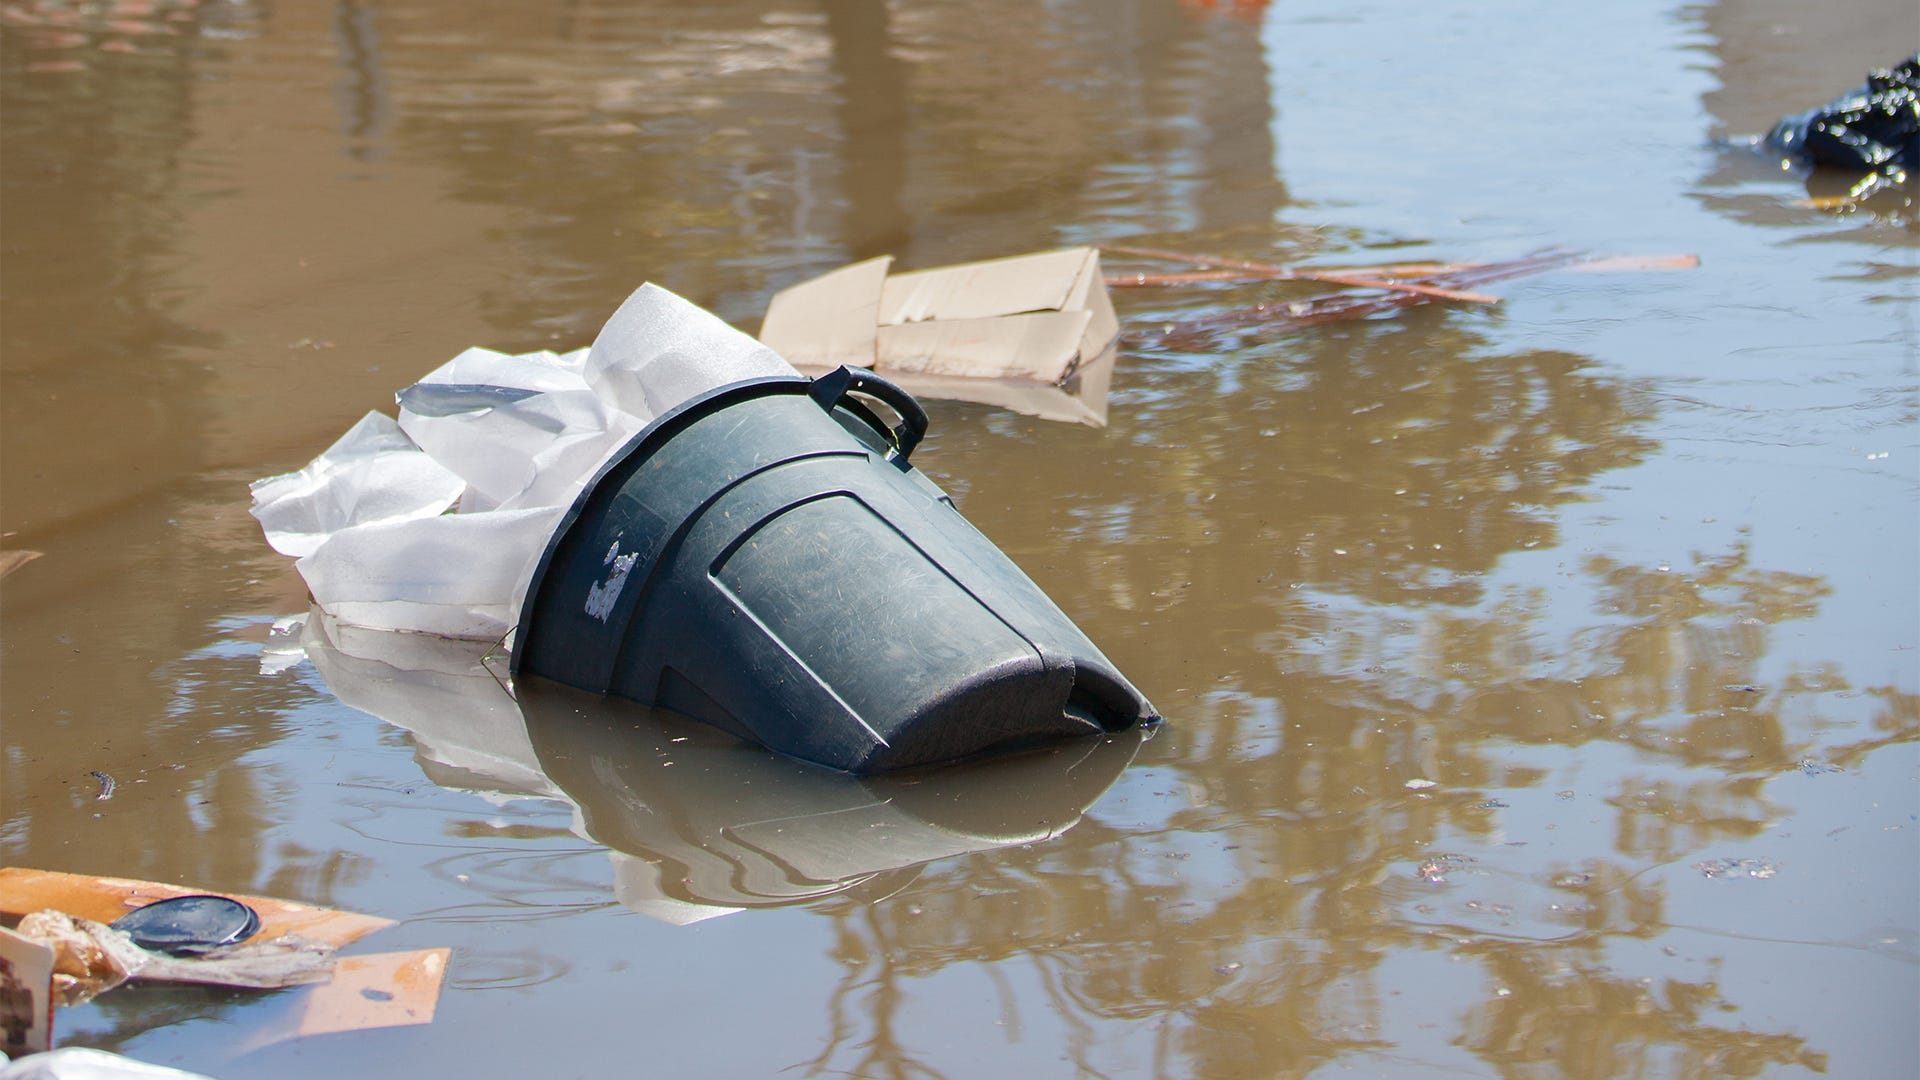 Flooding Checklist: How to Stop a Mosquito Outbreak